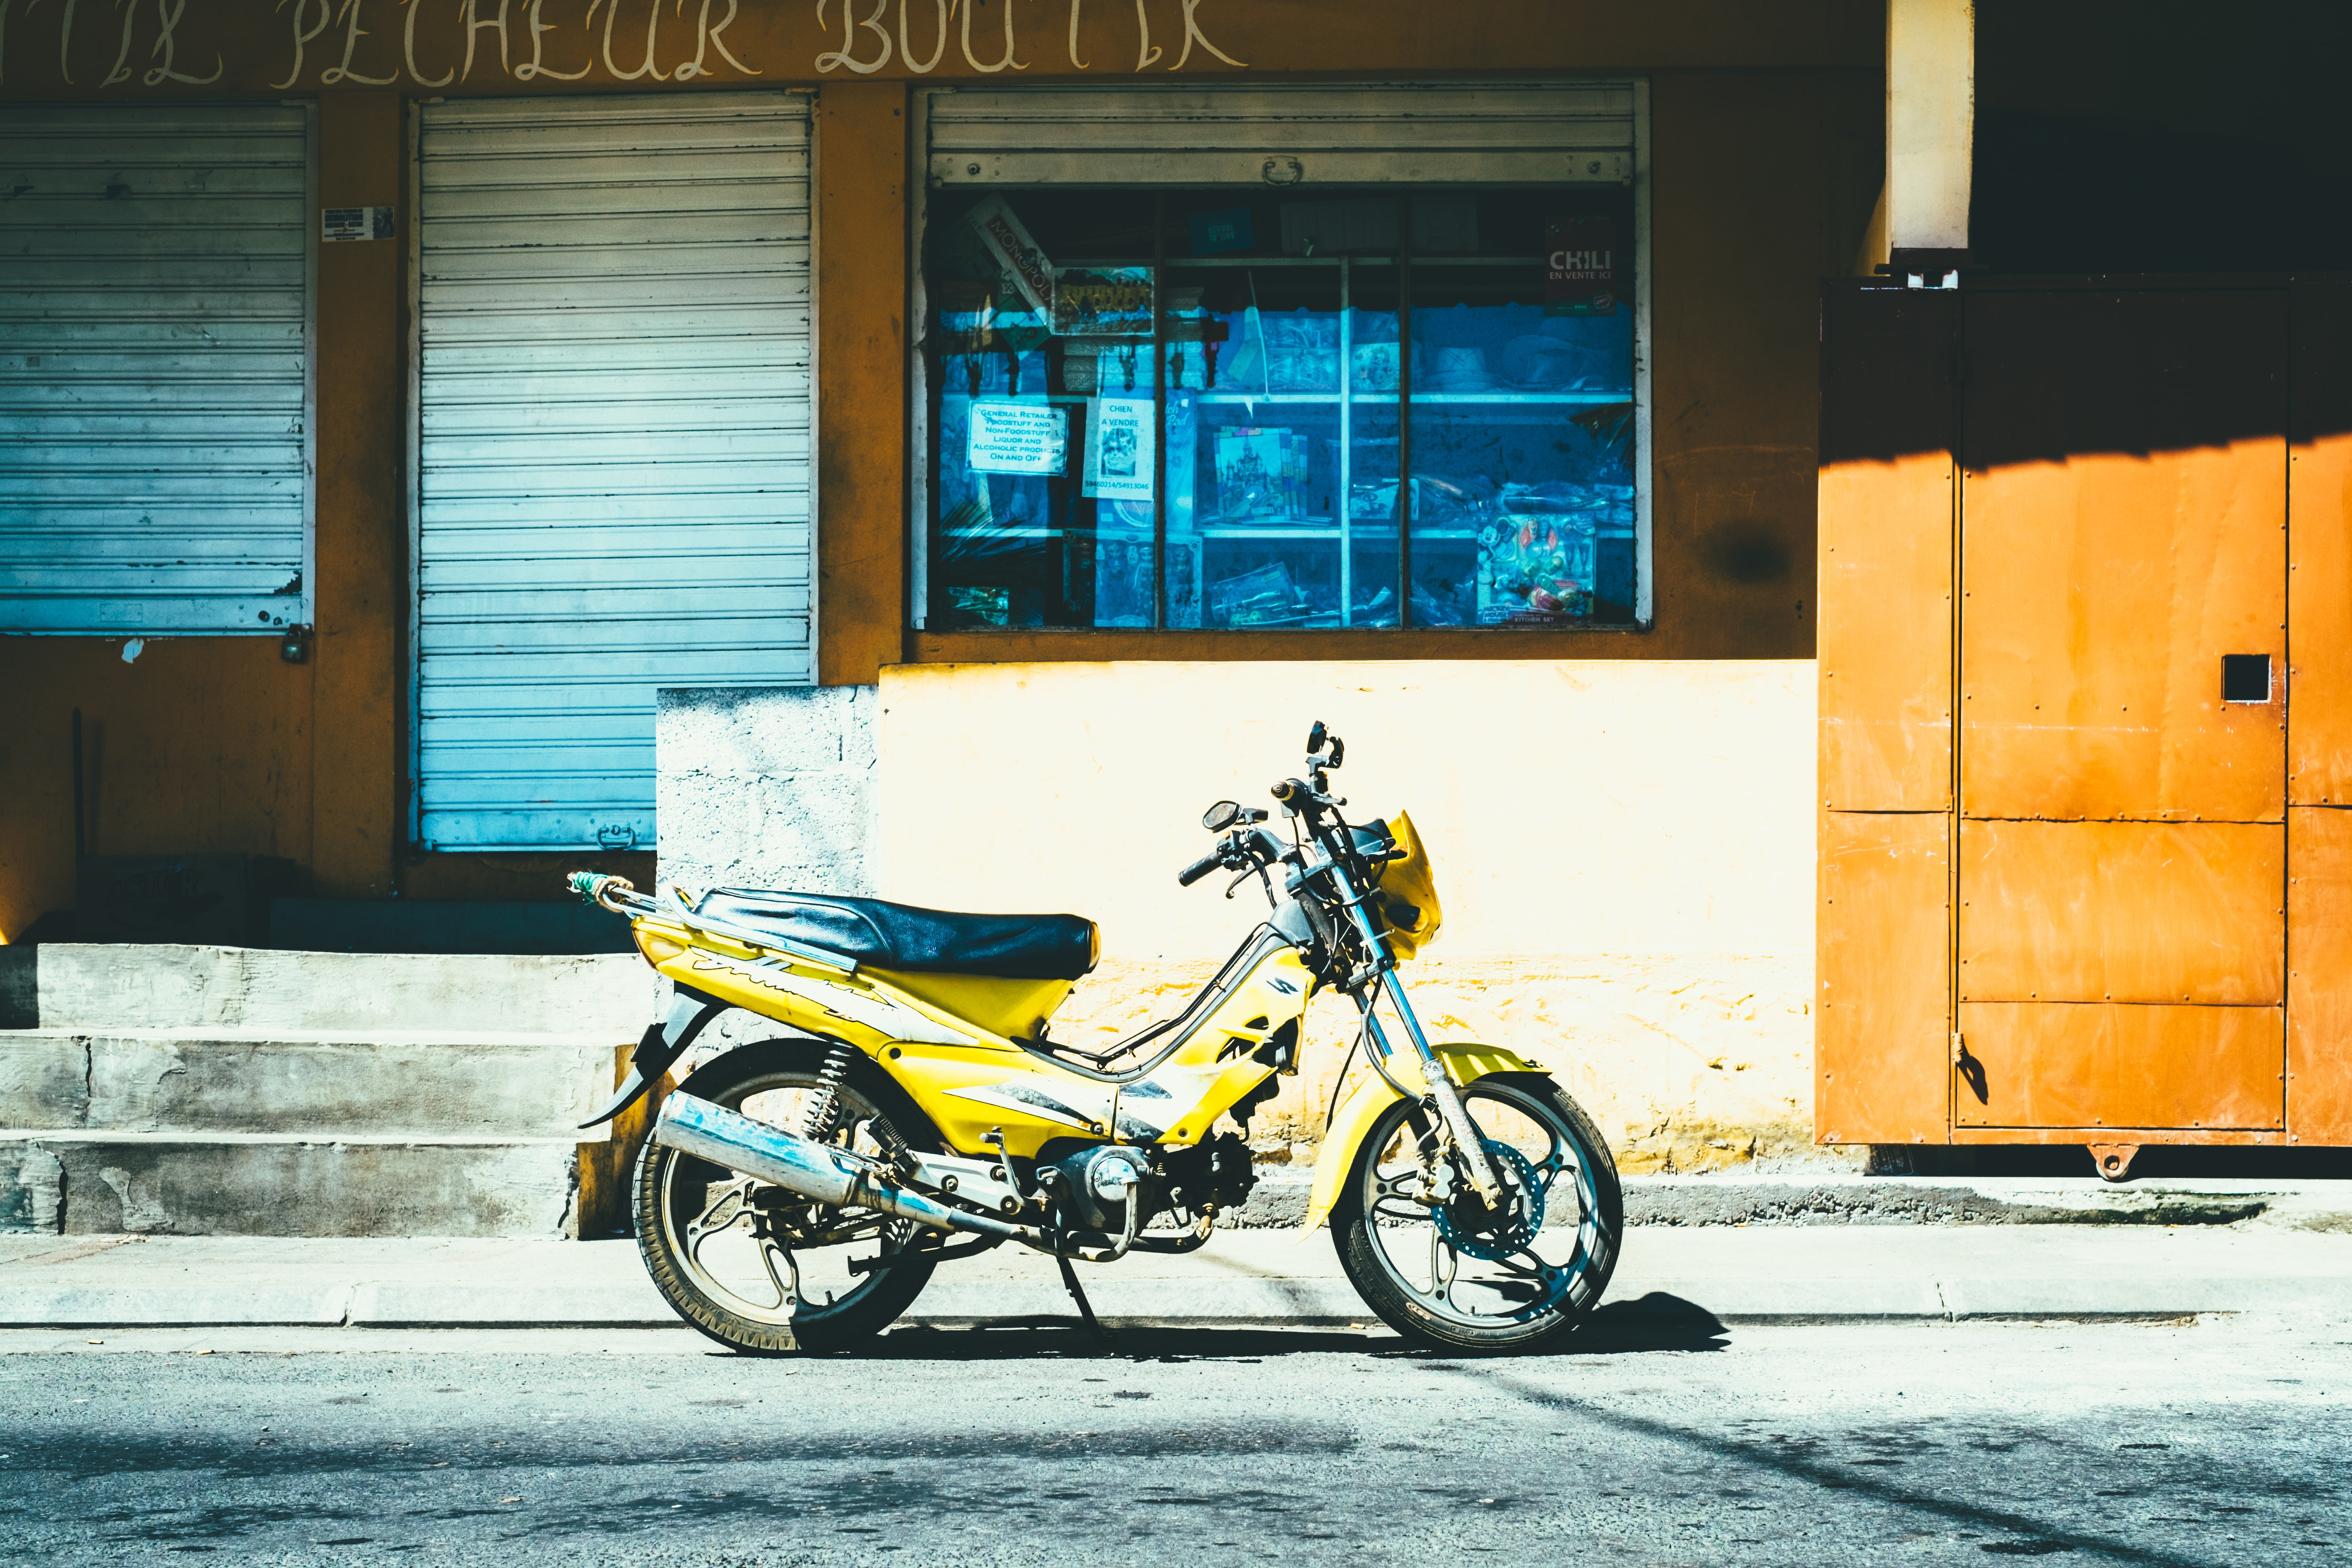 A yellow motorcycle parked outside a closed store with stone steps and steel shutters